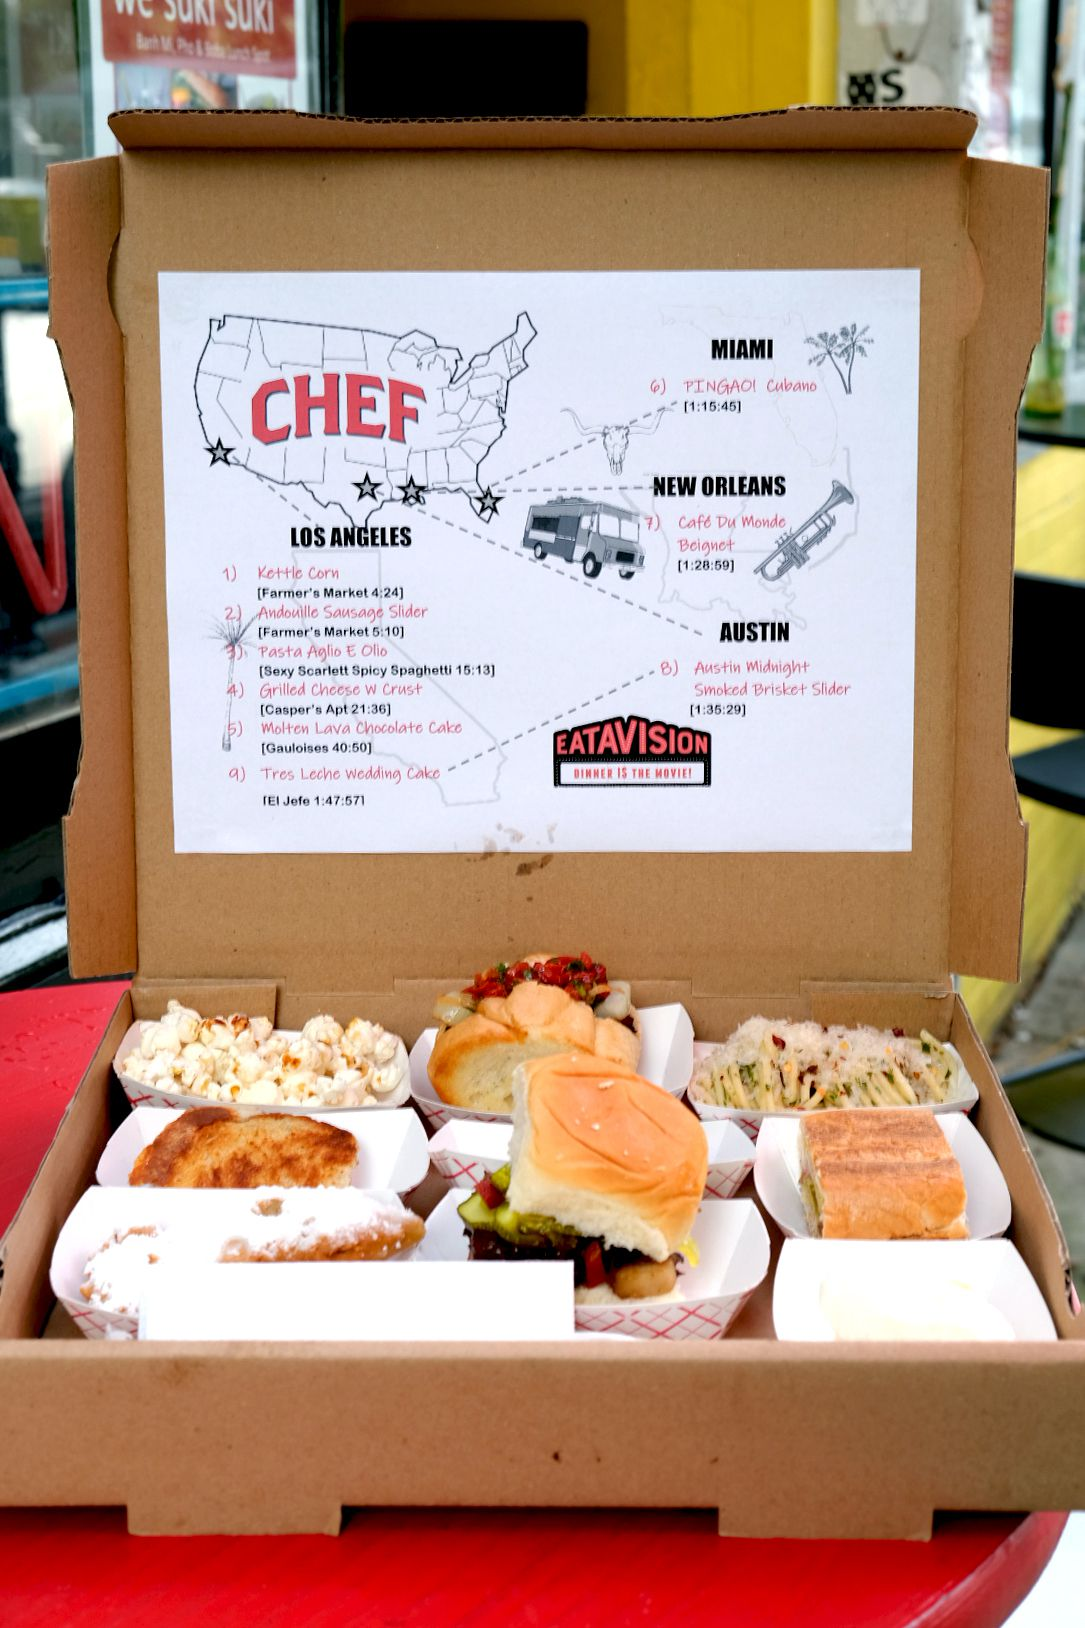 """A takeout pizza box filled with sandwiches, popcorn, pasta, dessert for the tasting menu and movie screen of """"Chef"""" by Eatavision"""